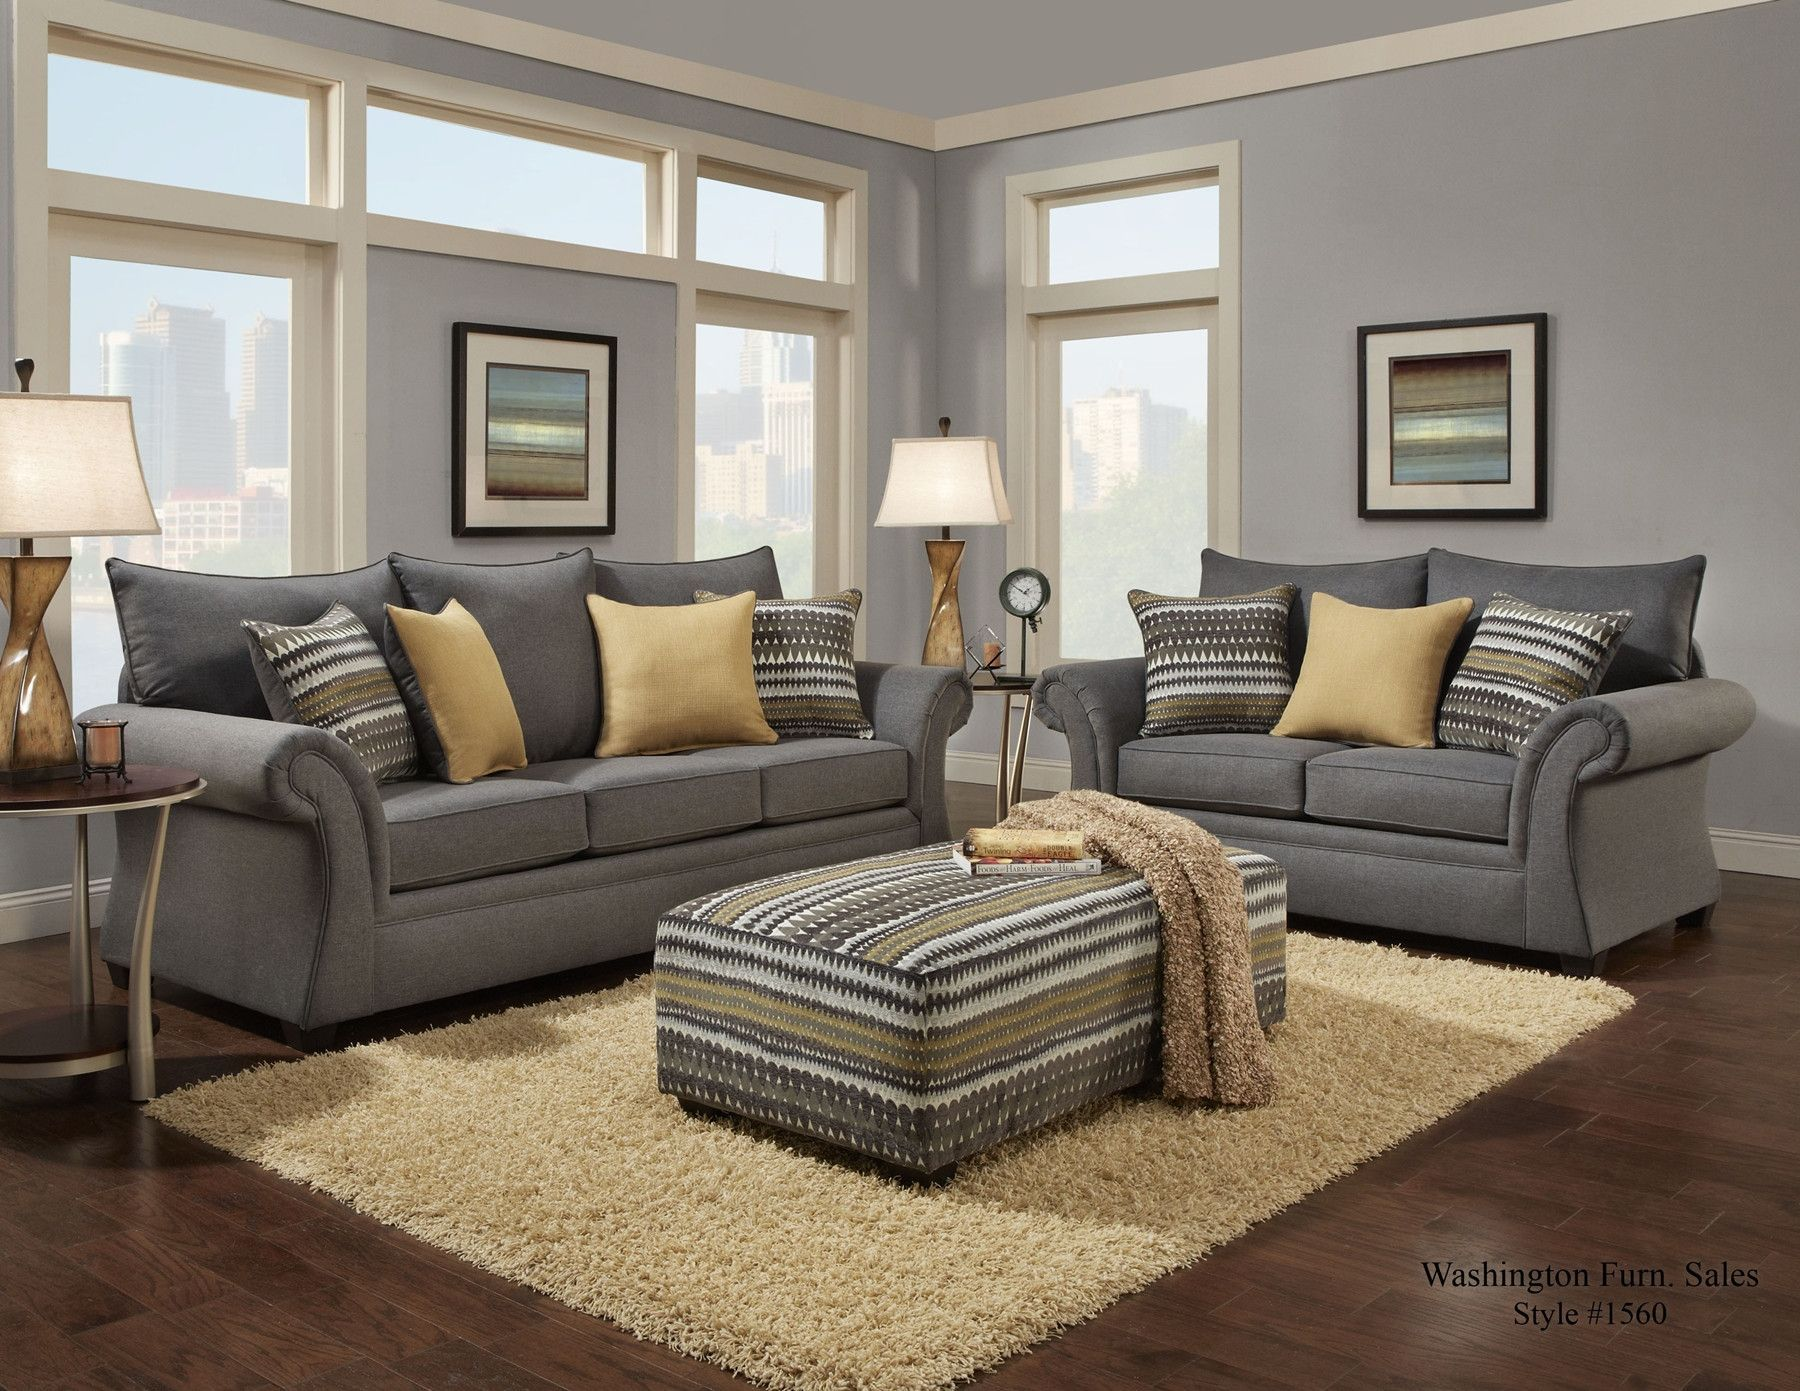 1560 - The Contemporary Living Room Set - Grey | Pinterest | Living ...